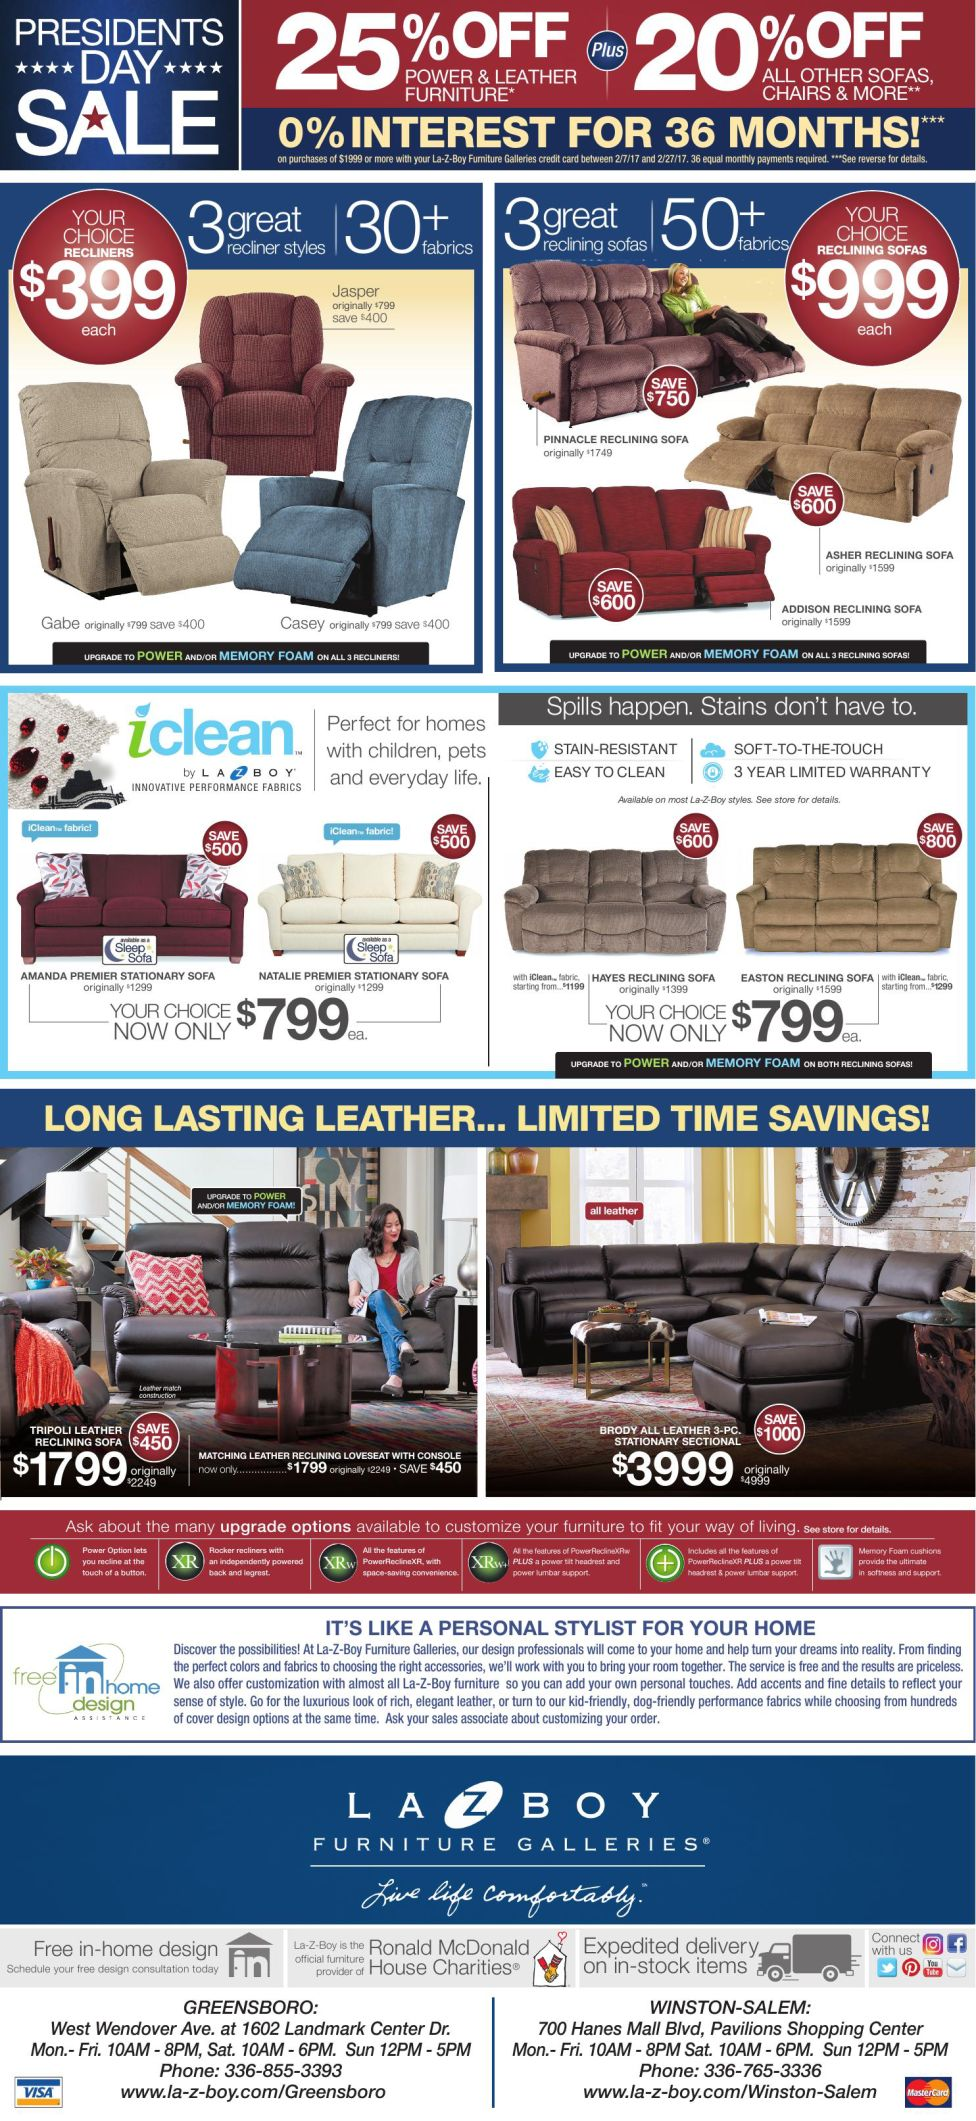 2017 Presidents Day Furniture Sale Flyer Journalnow Com